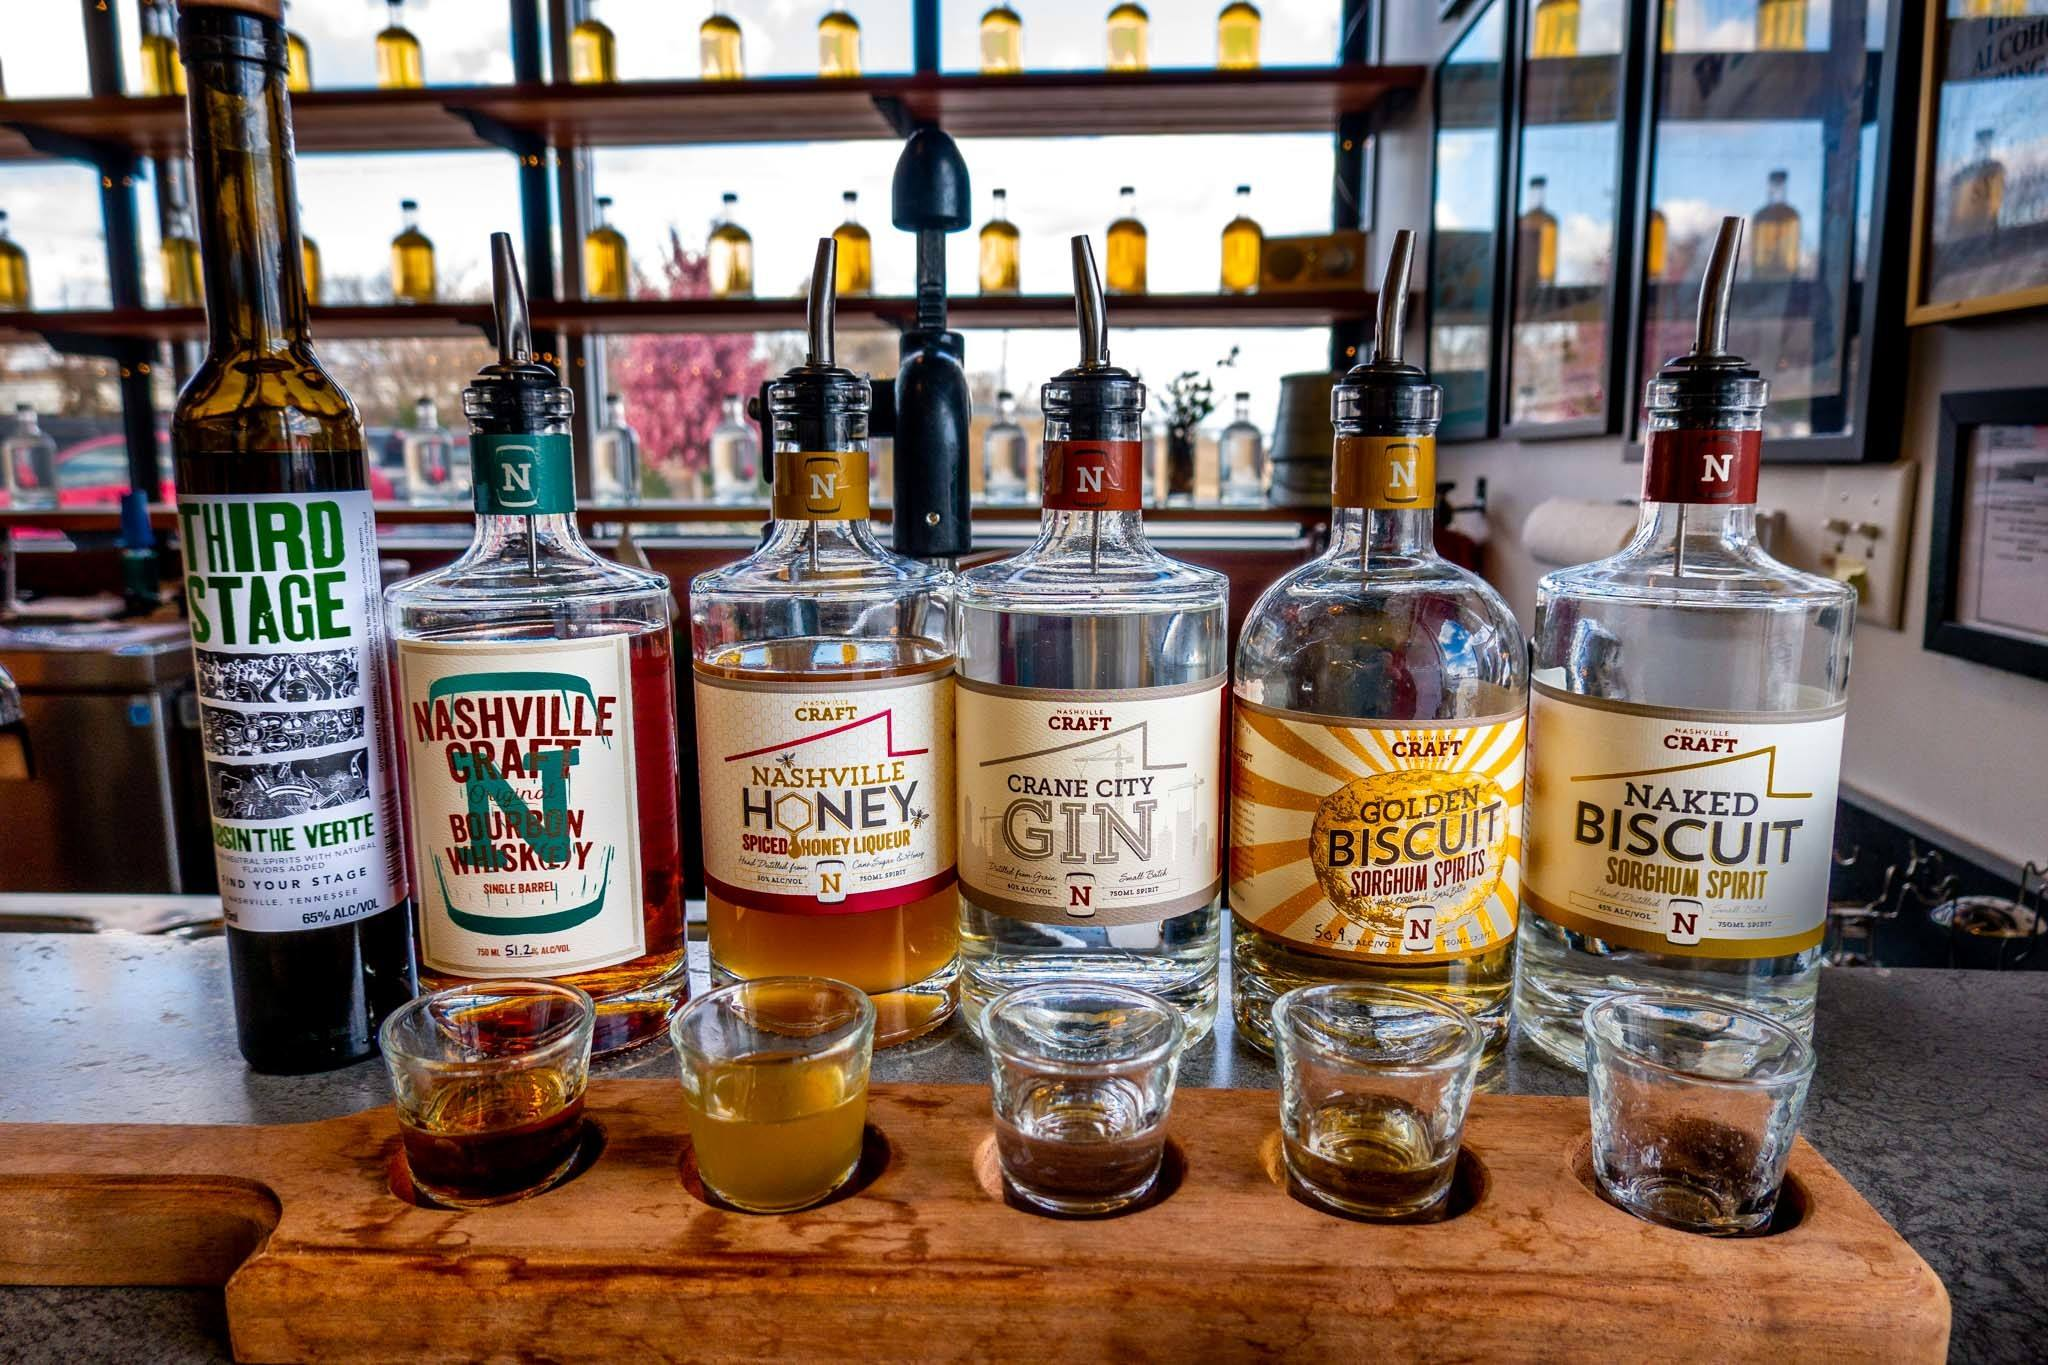 Bottles of spirits and shot glasses on the bar at Nashville Craft Distillery